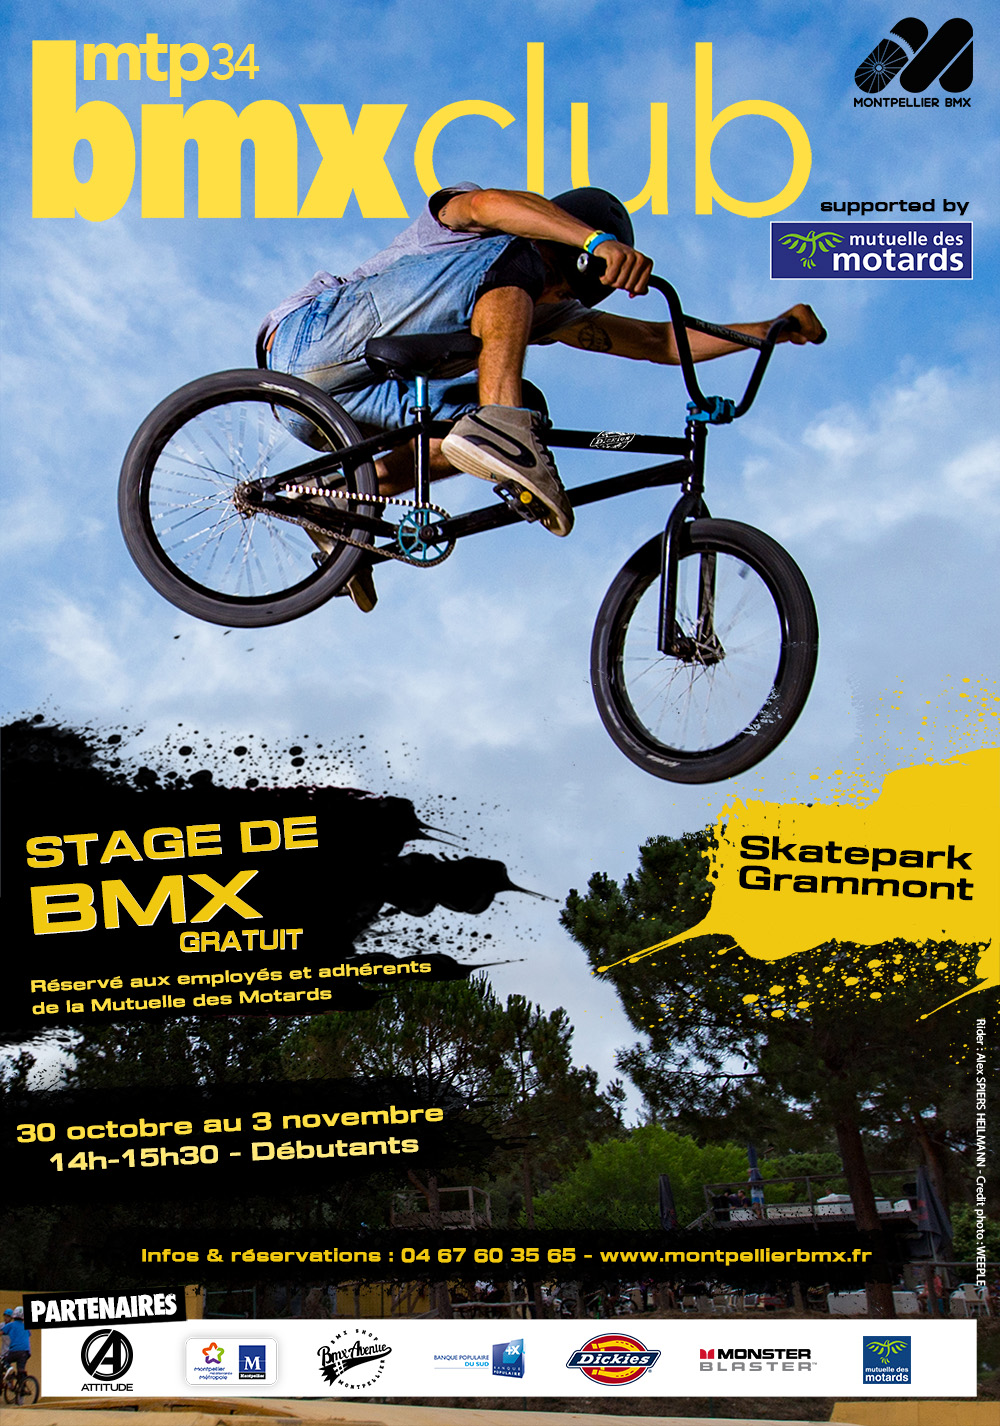 partenariat stages gratuits adh rents et salari s de la mutuelle des motards montpellier bmx. Black Bedroom Furniture Sets. Home Design Ideas